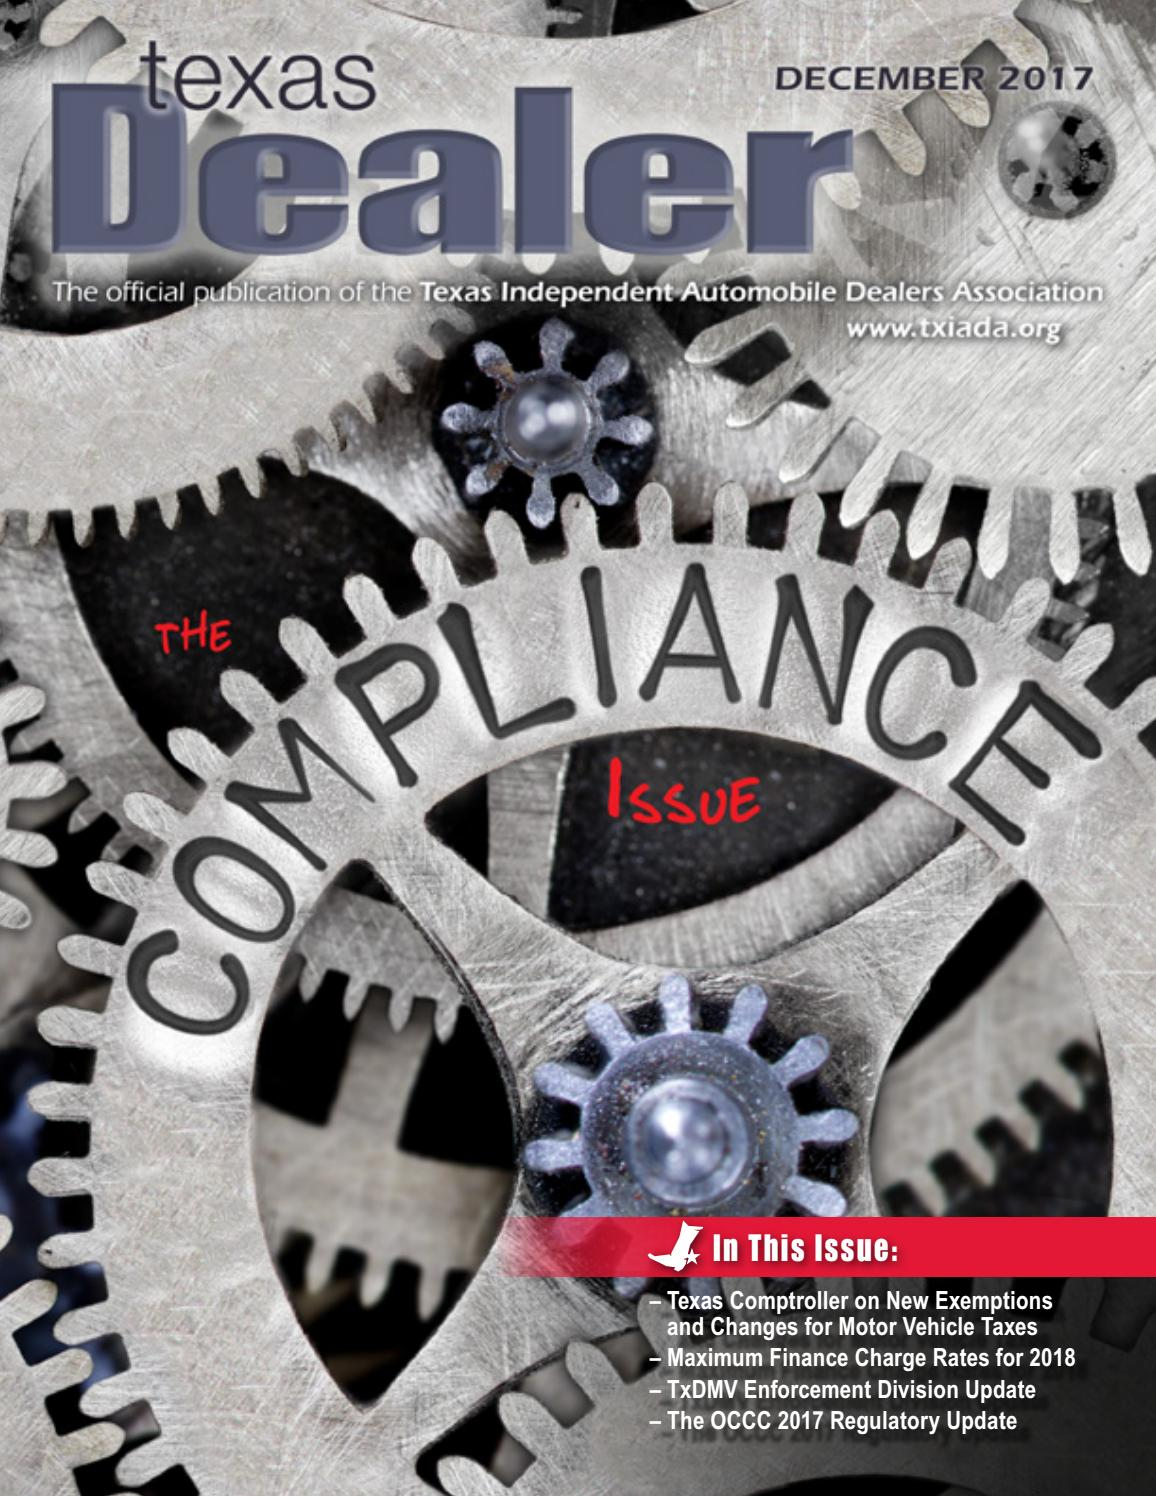 Texas Dealer December 2017 by Texas Independent Auto Dealers